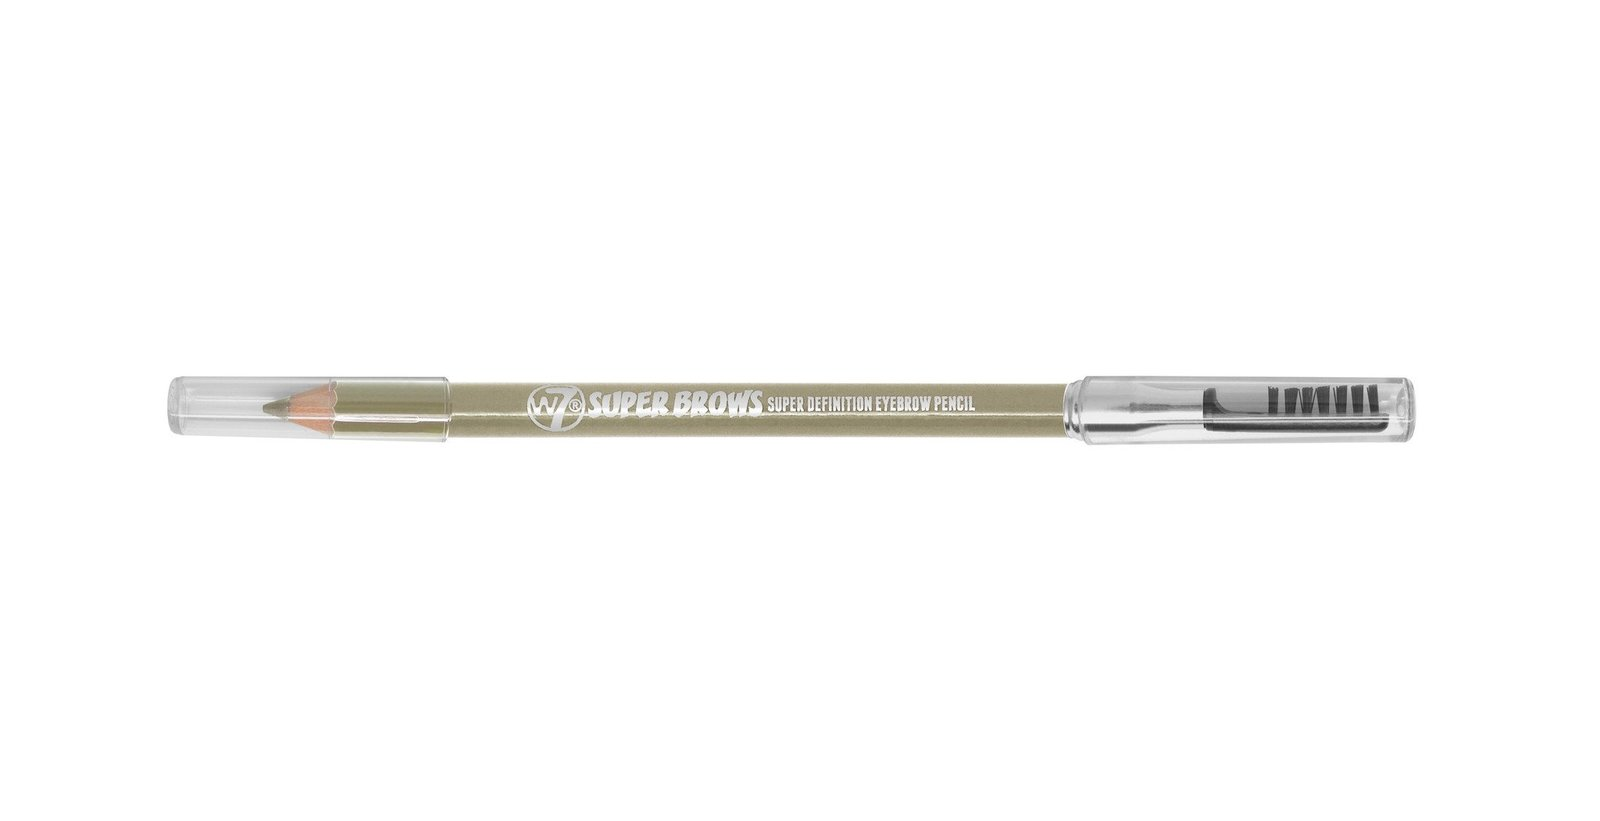 W7 Super Brows Pencil (Blonde) image